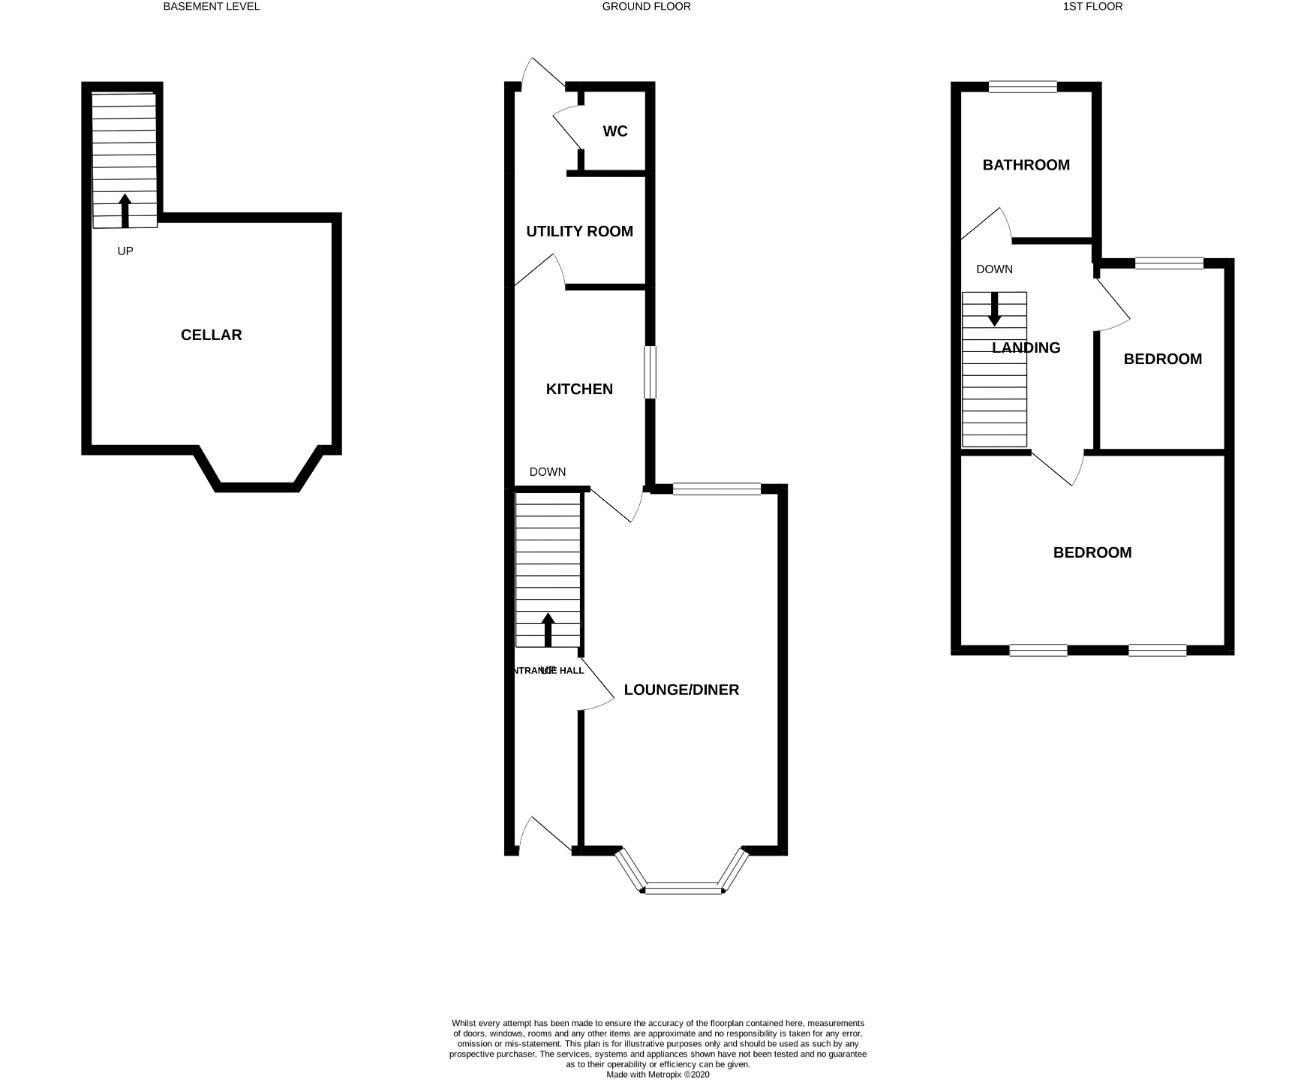 Floorplans For Whitworth Road, Northampton